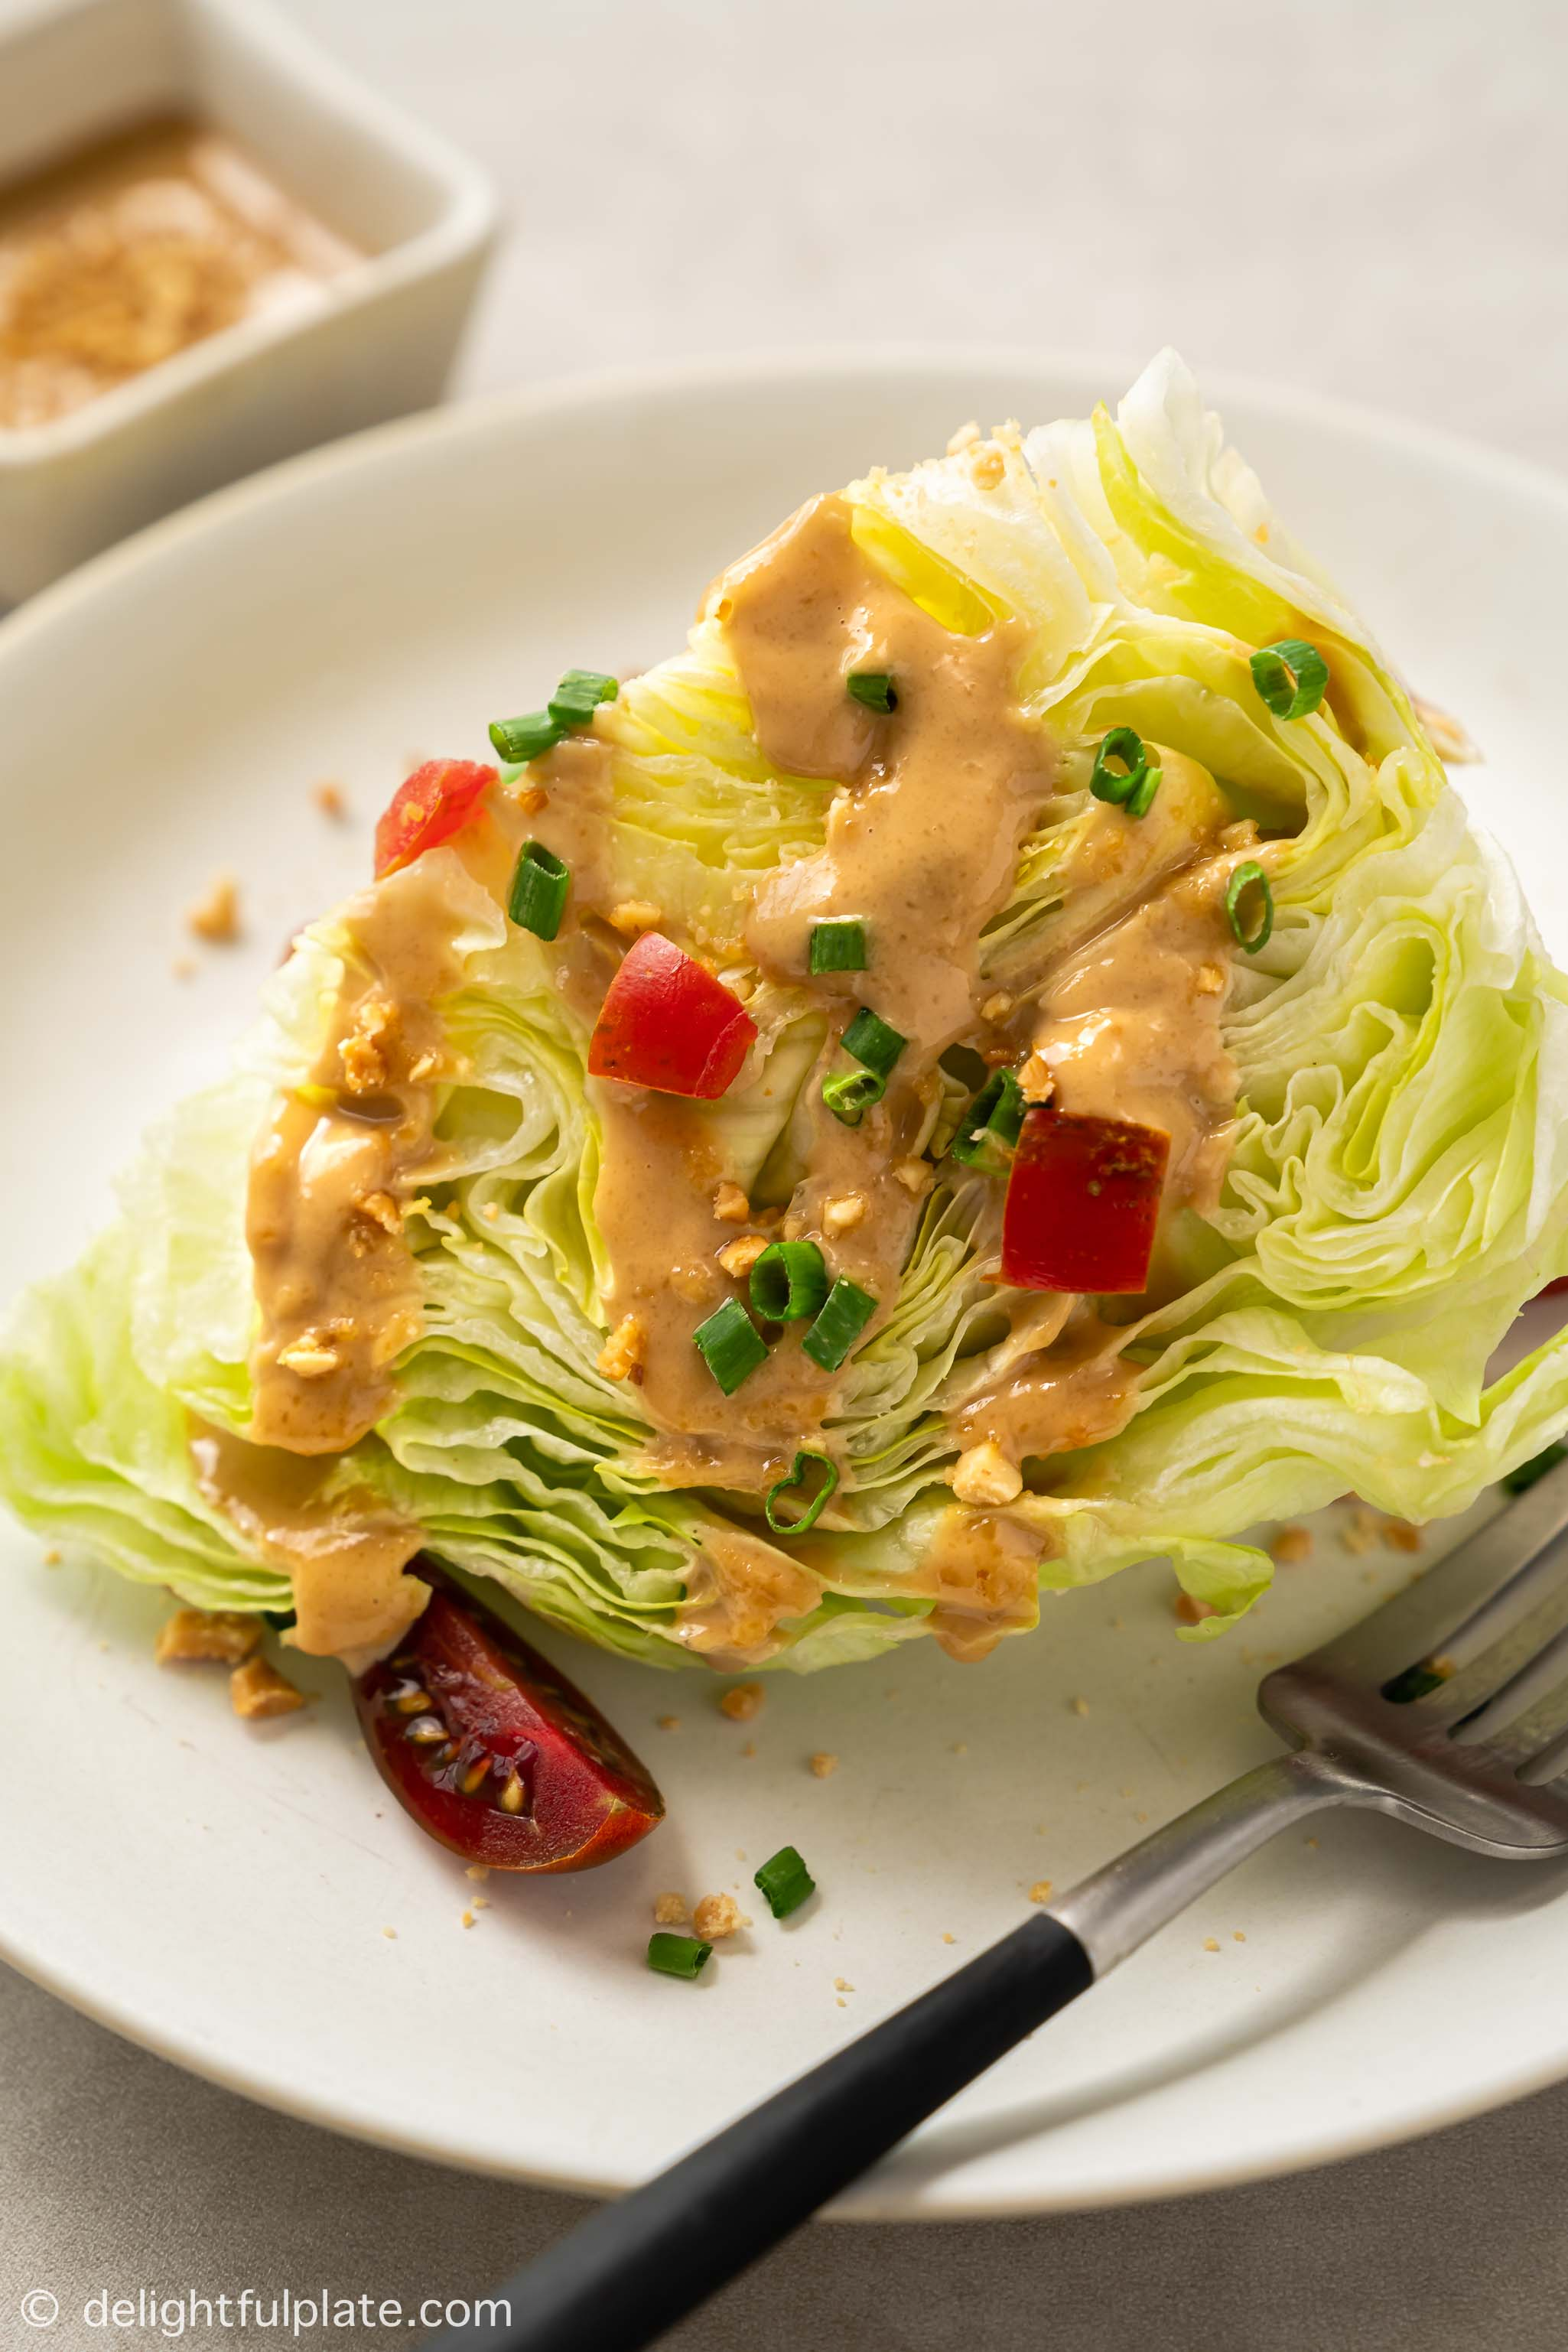 a wedge of iceberg lettuce served with peanut dressing